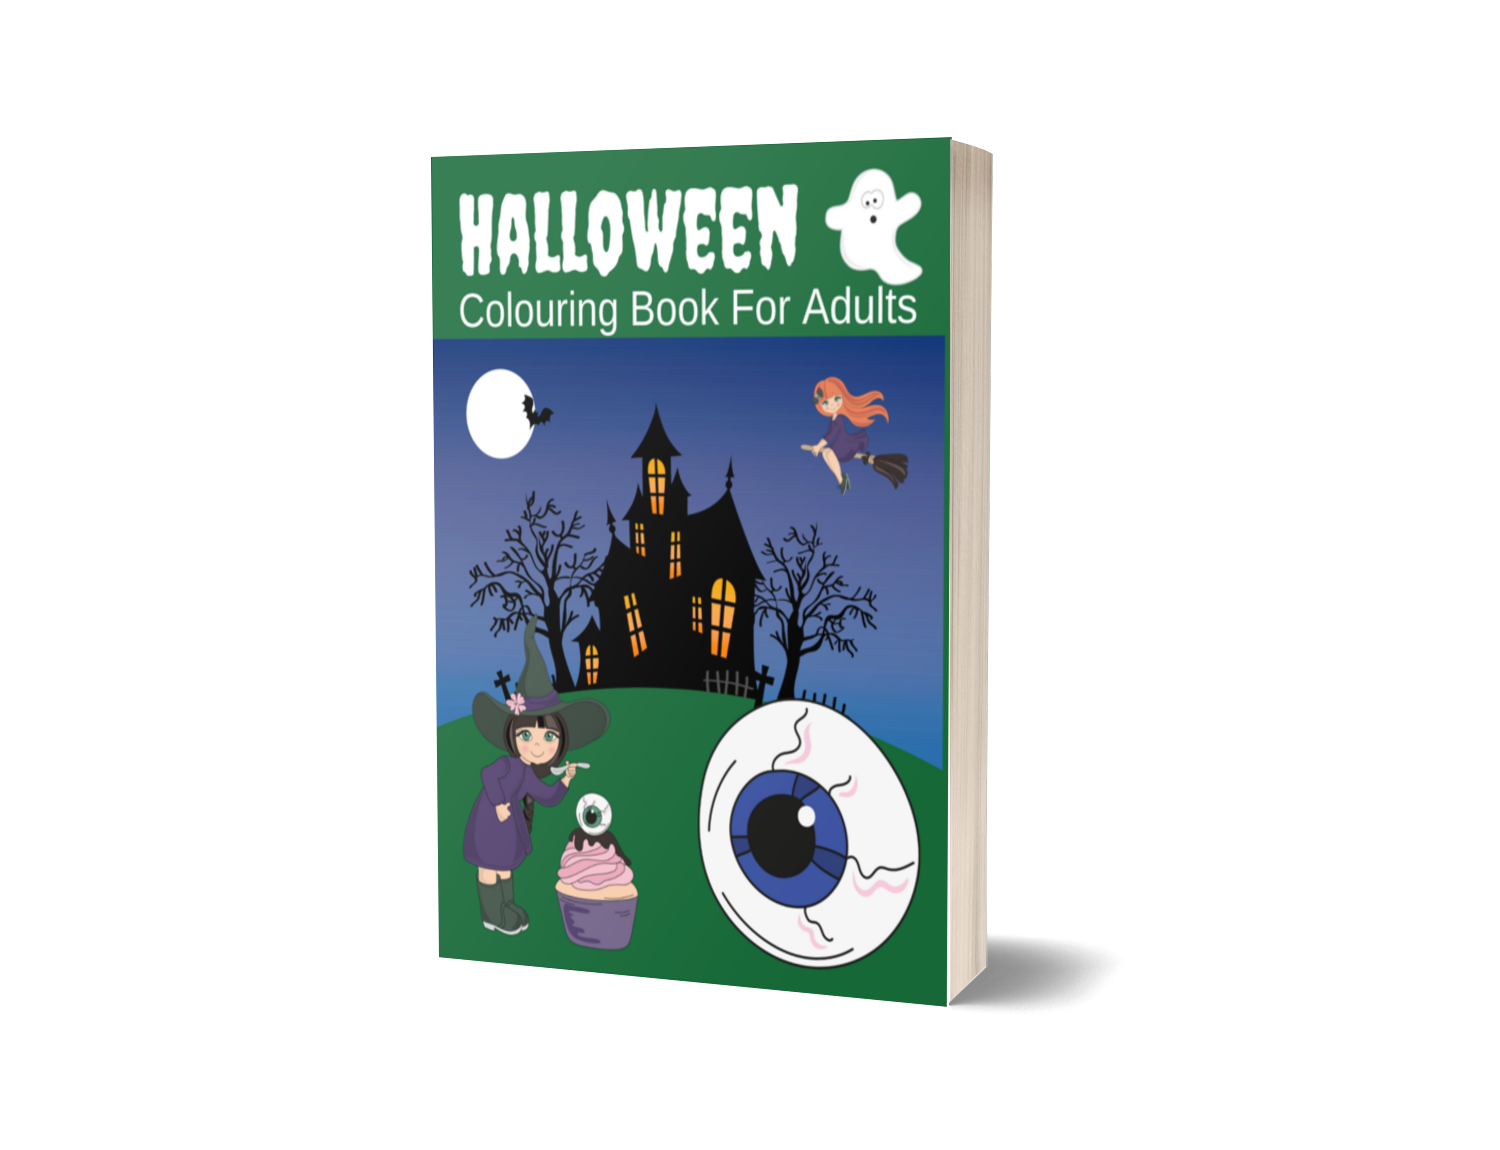 Halloween Colouring Book For Adults